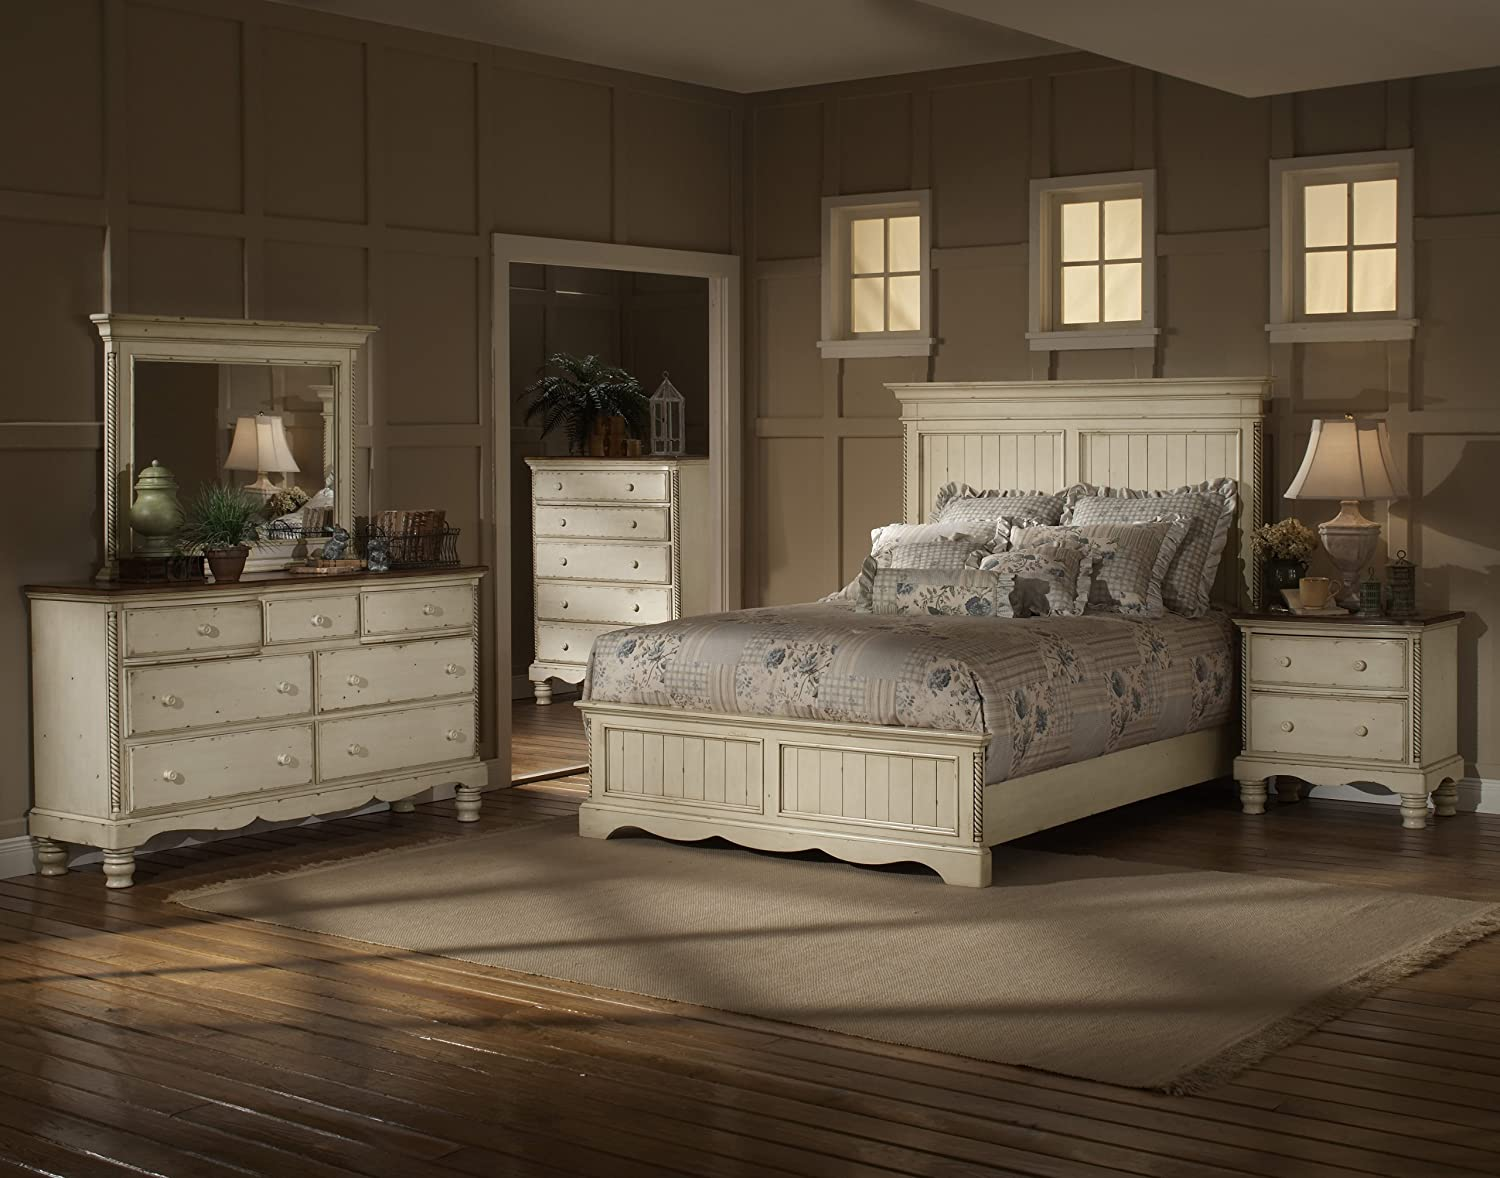 Amazon.com: Wilshire Panel Bed w High Profile Headboard in Antique ...